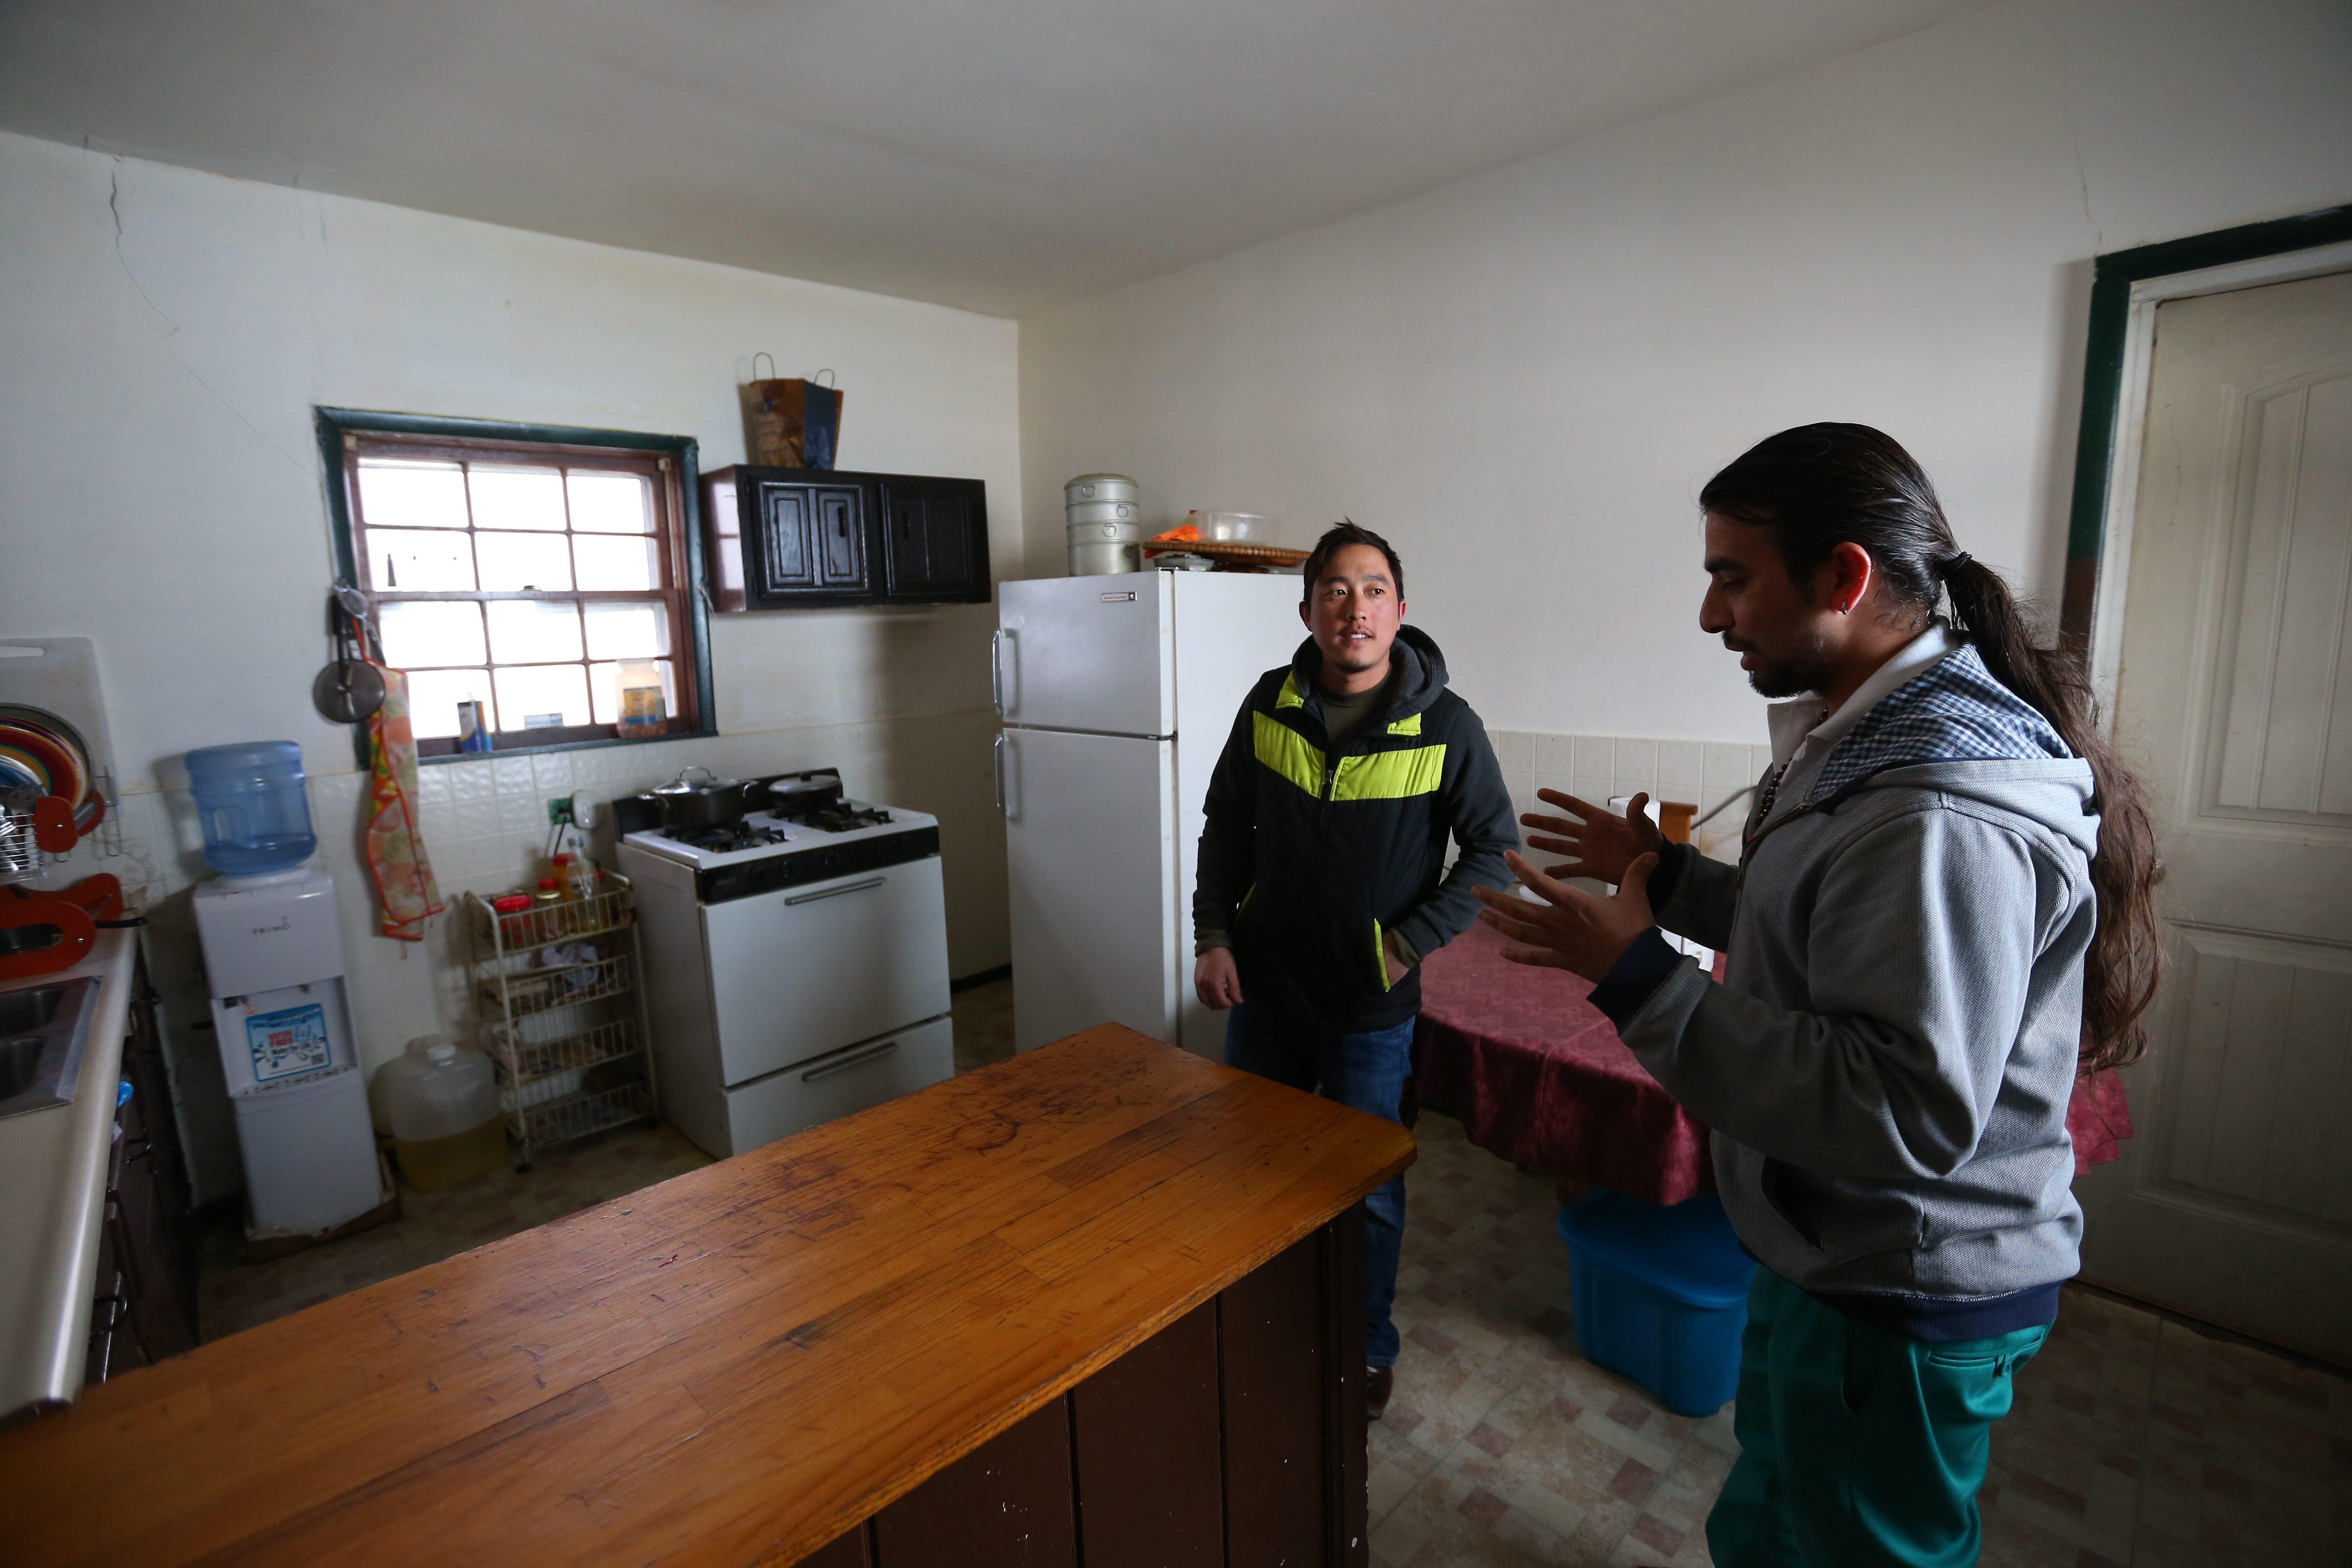 Jericho Road worker Govinda Subedi, right, points out potential home health hazards to Hem Magar.